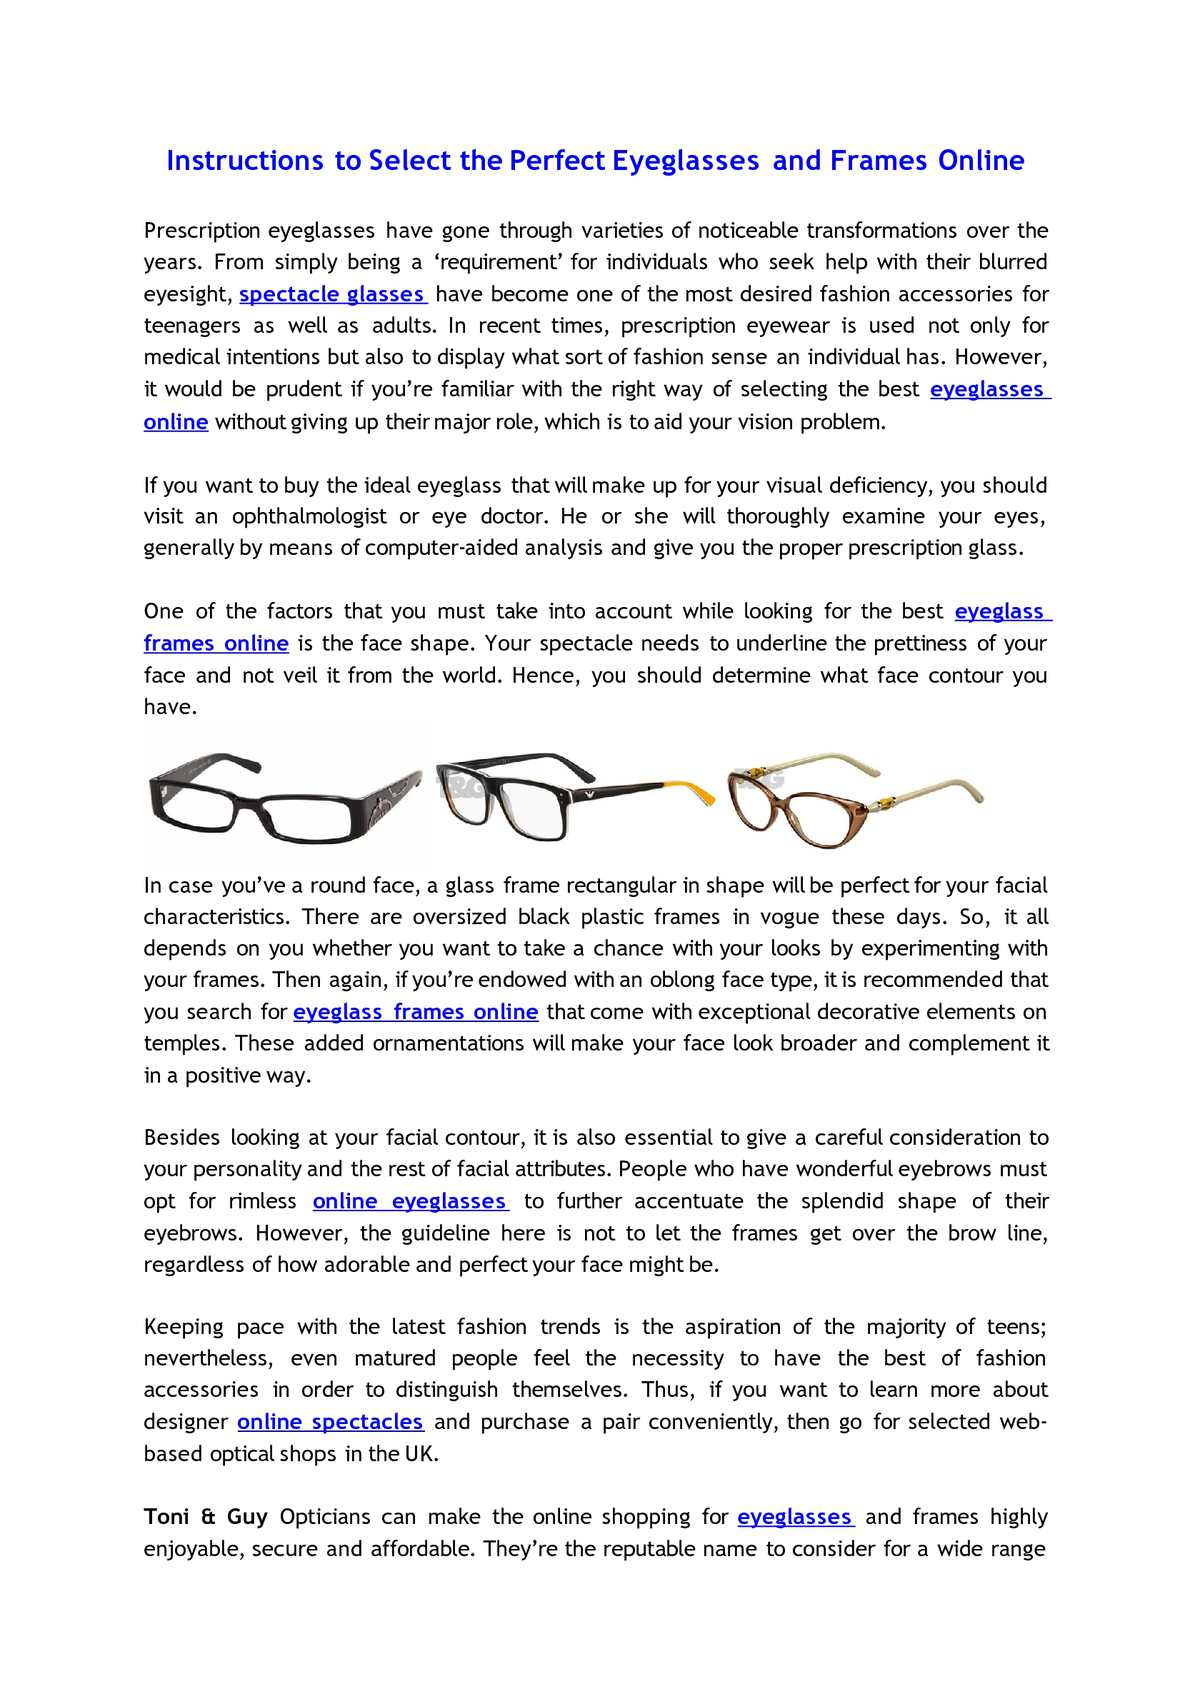 7e3f71c02b6 Calaméo - Instructions to Select the Perfect Eyeglasses and Frames Online